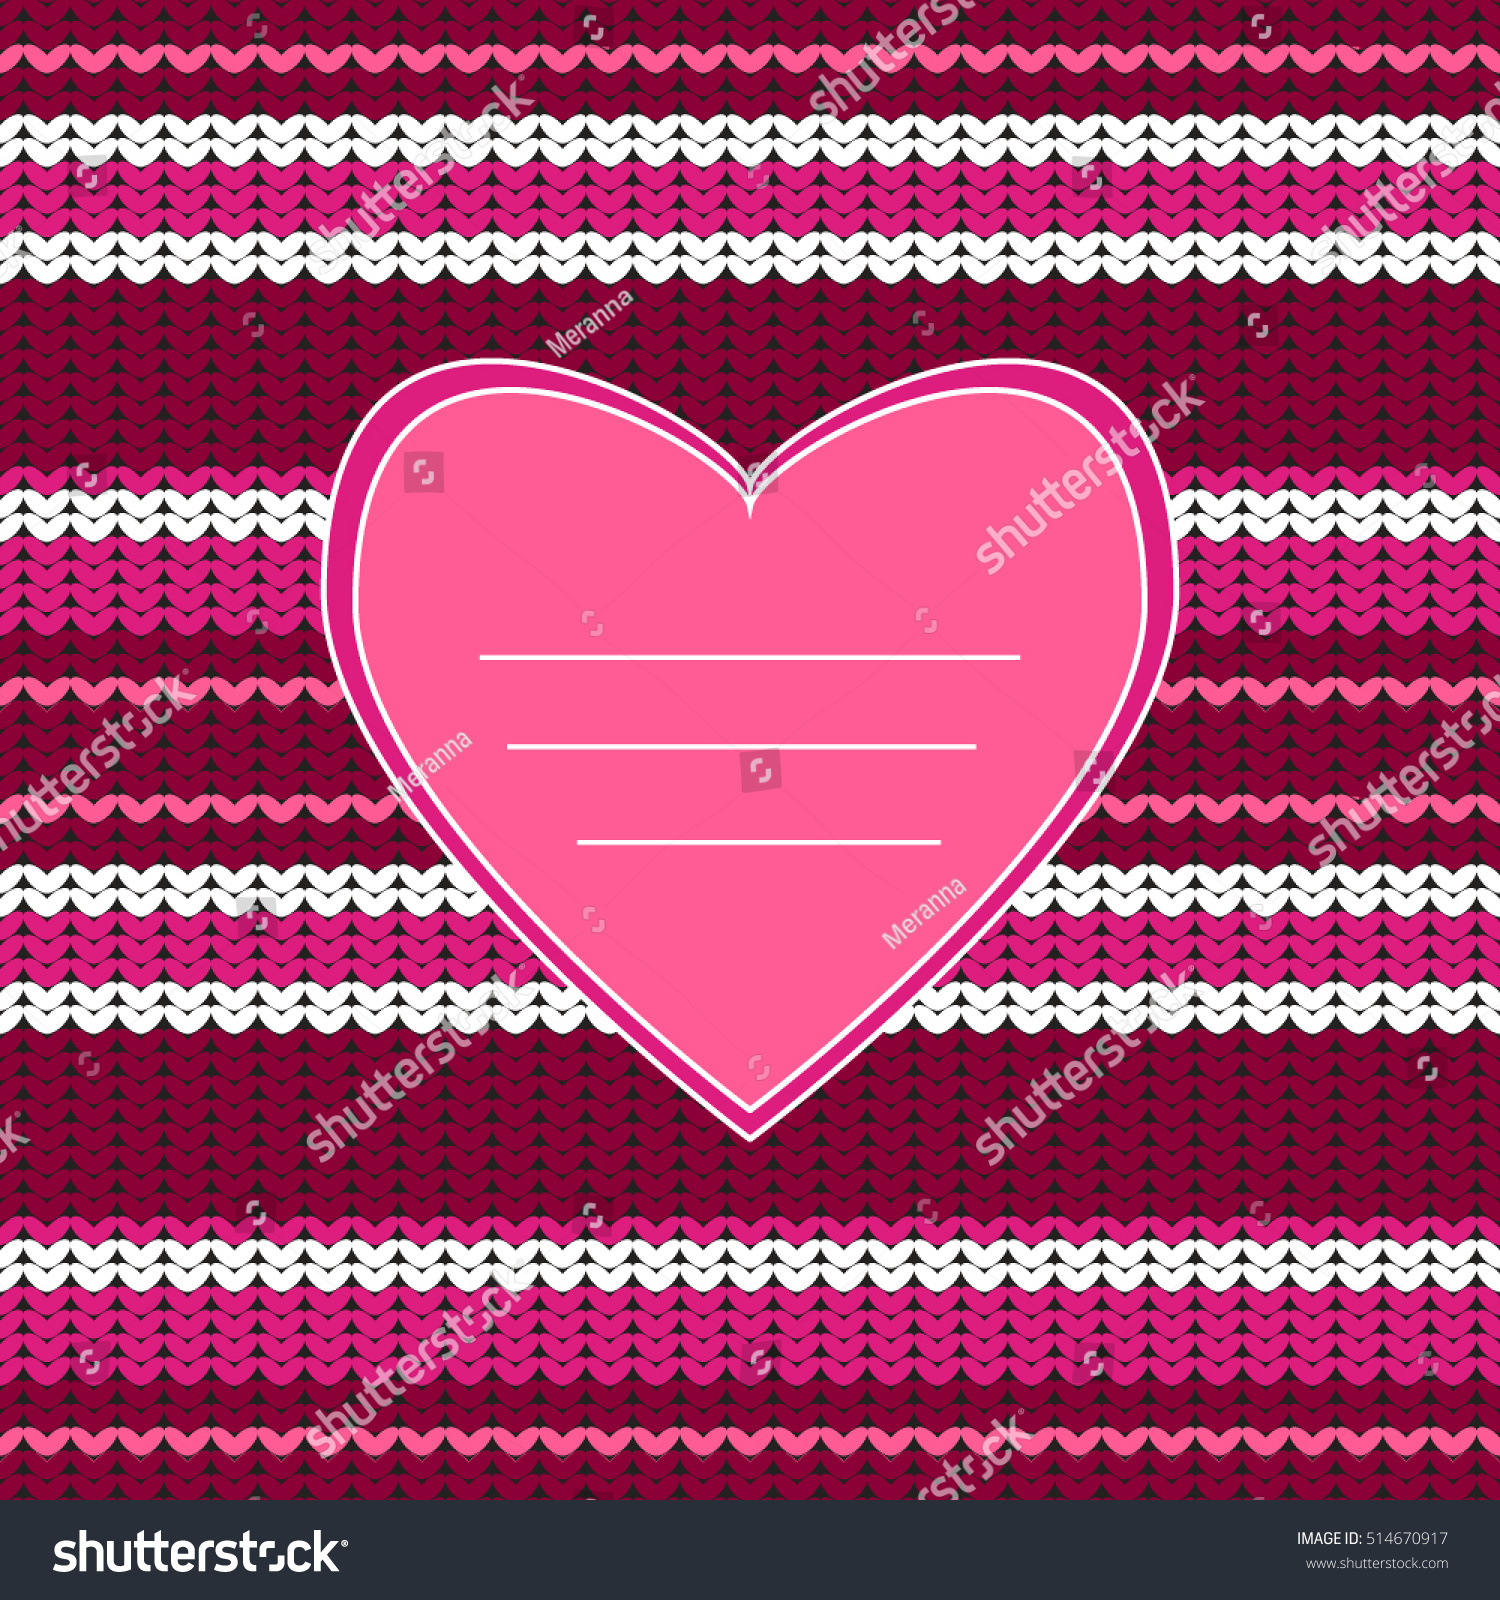 Amazing Knitted Texture Heart Knitting Seamless Stock Vector HD ...